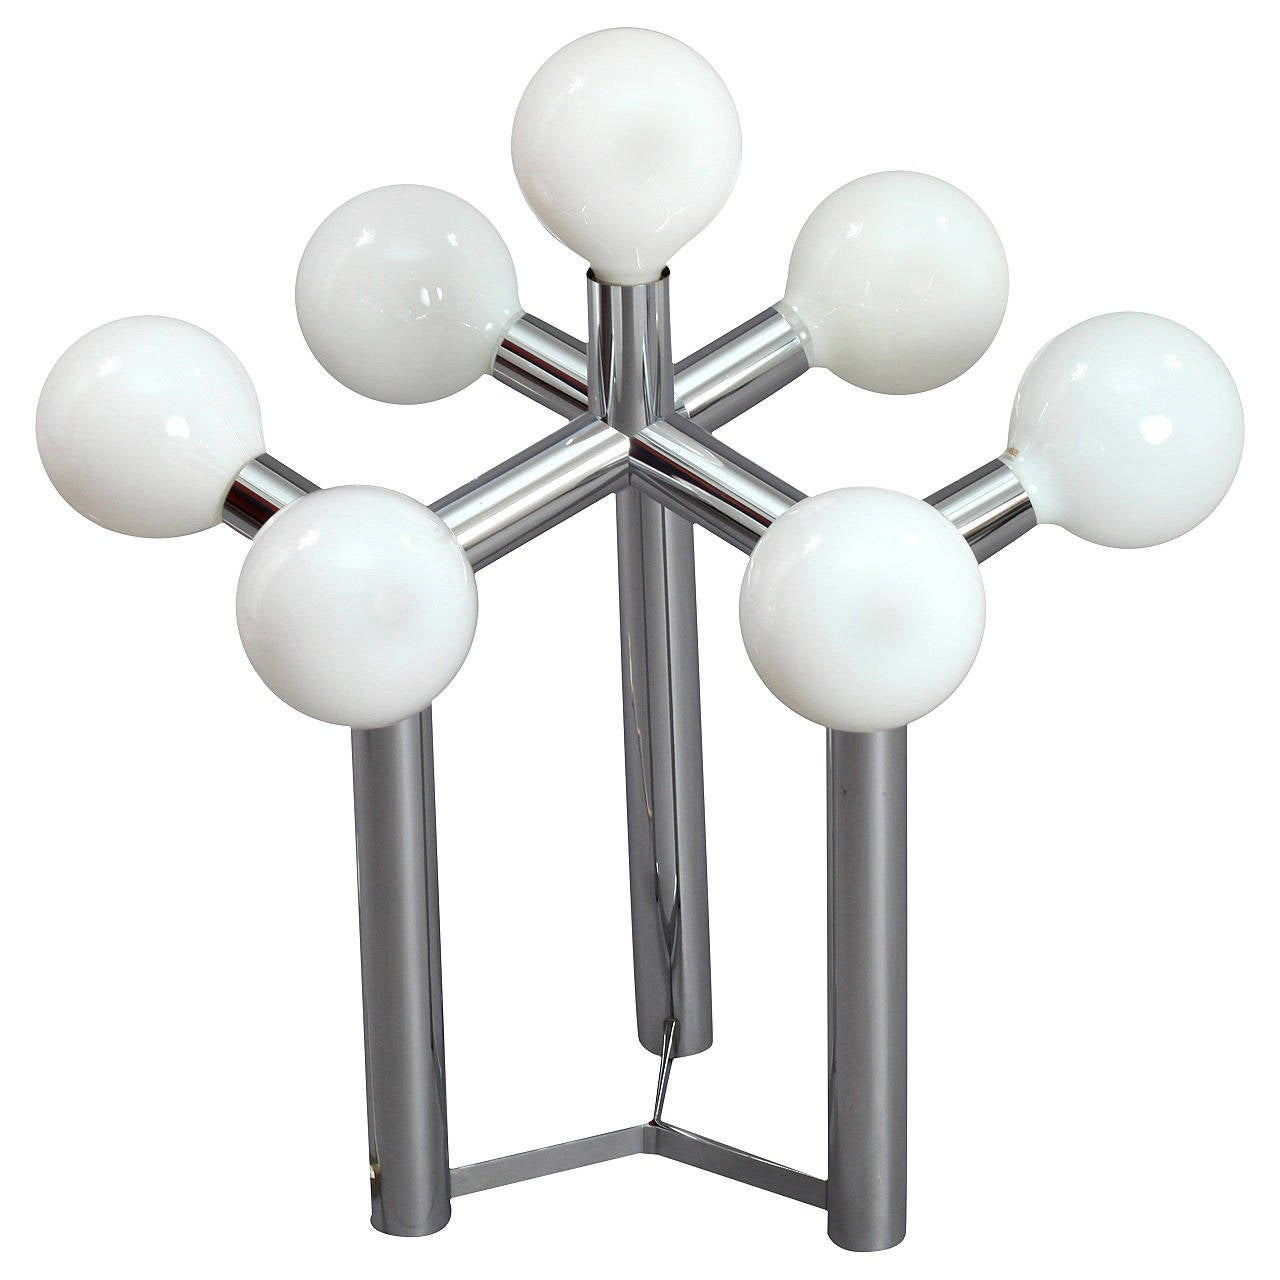 Space Age Atomium Table Lamp Designed by J. T. Kalmar, Vienna, 1970 For Sale